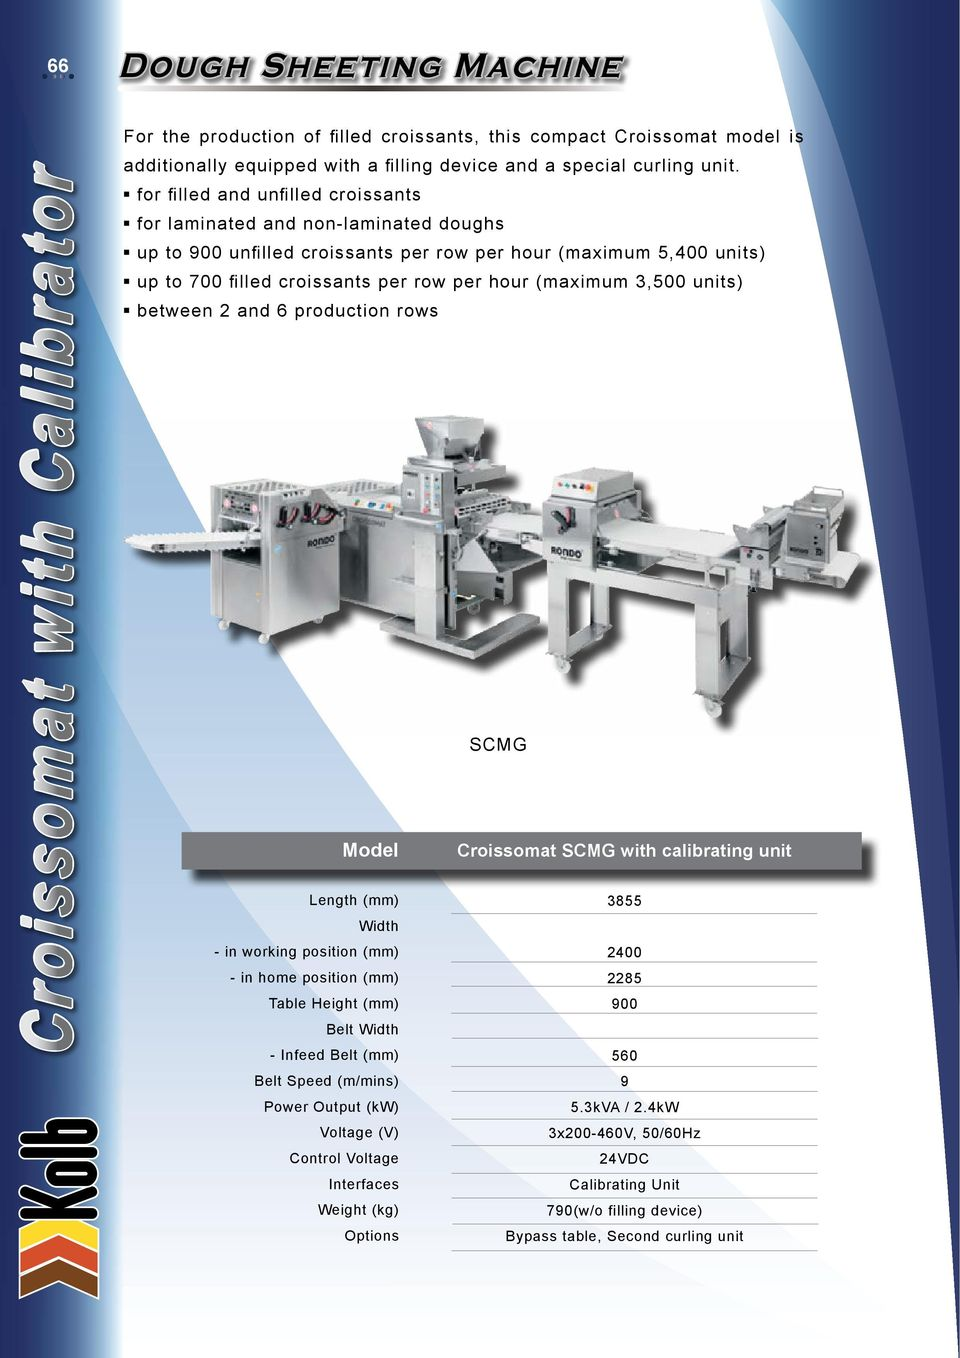 3500 Units Between 2 And 6 Production Rows SCMG Croissomat With Calibrating Unit Length